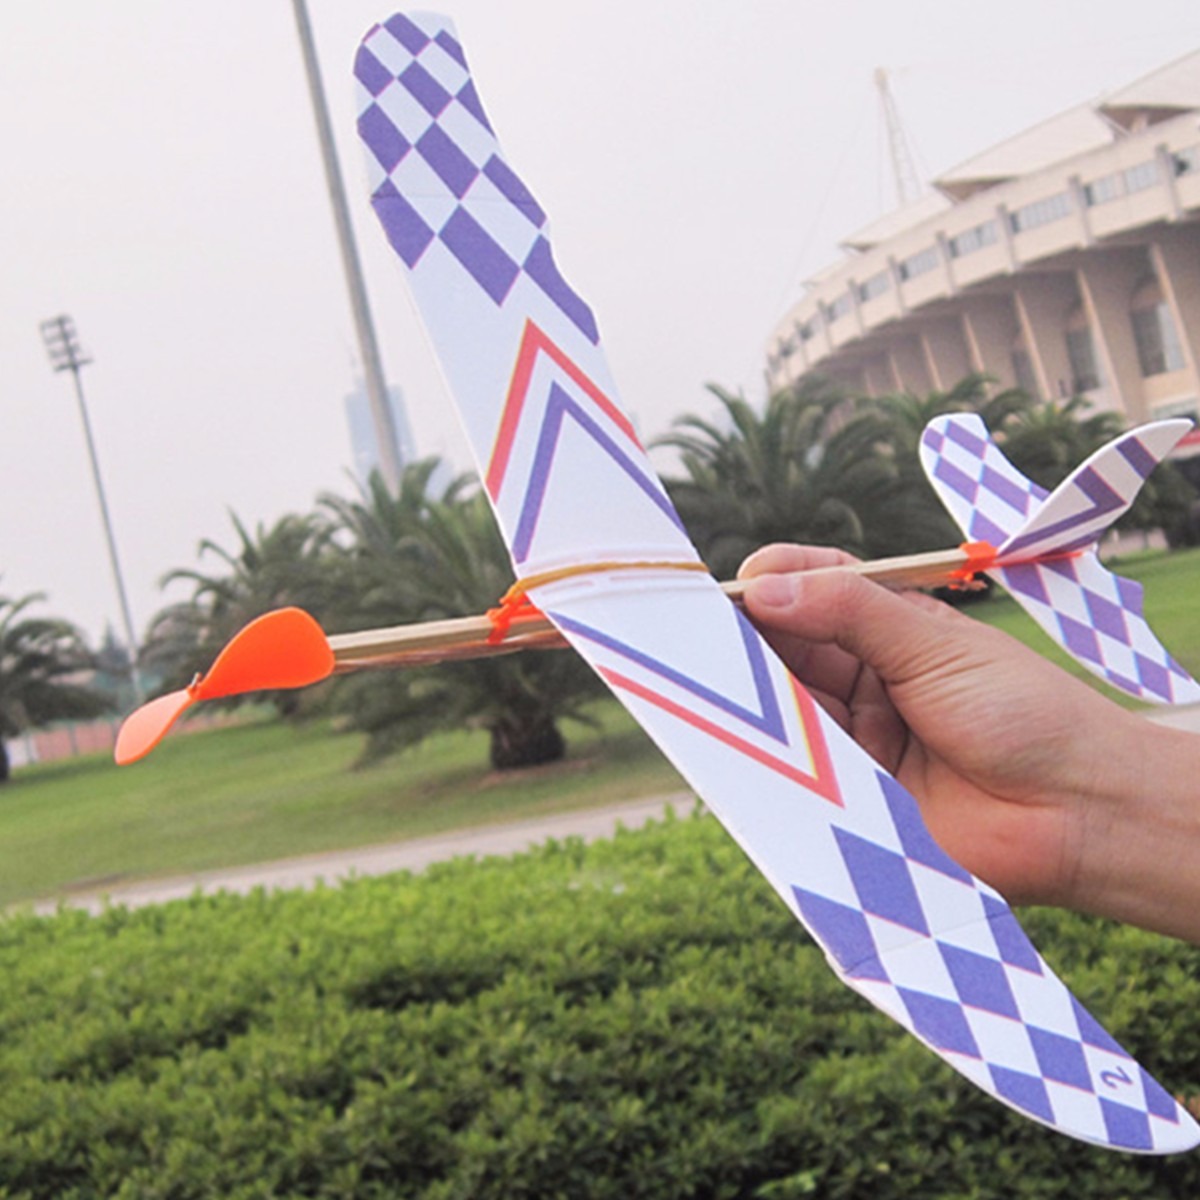 Best ideas about DIY Aircraft Kit . Save or Pin 5PCS DIY Foam Plane Elastic Rubber Band Powered Aircraft Now.